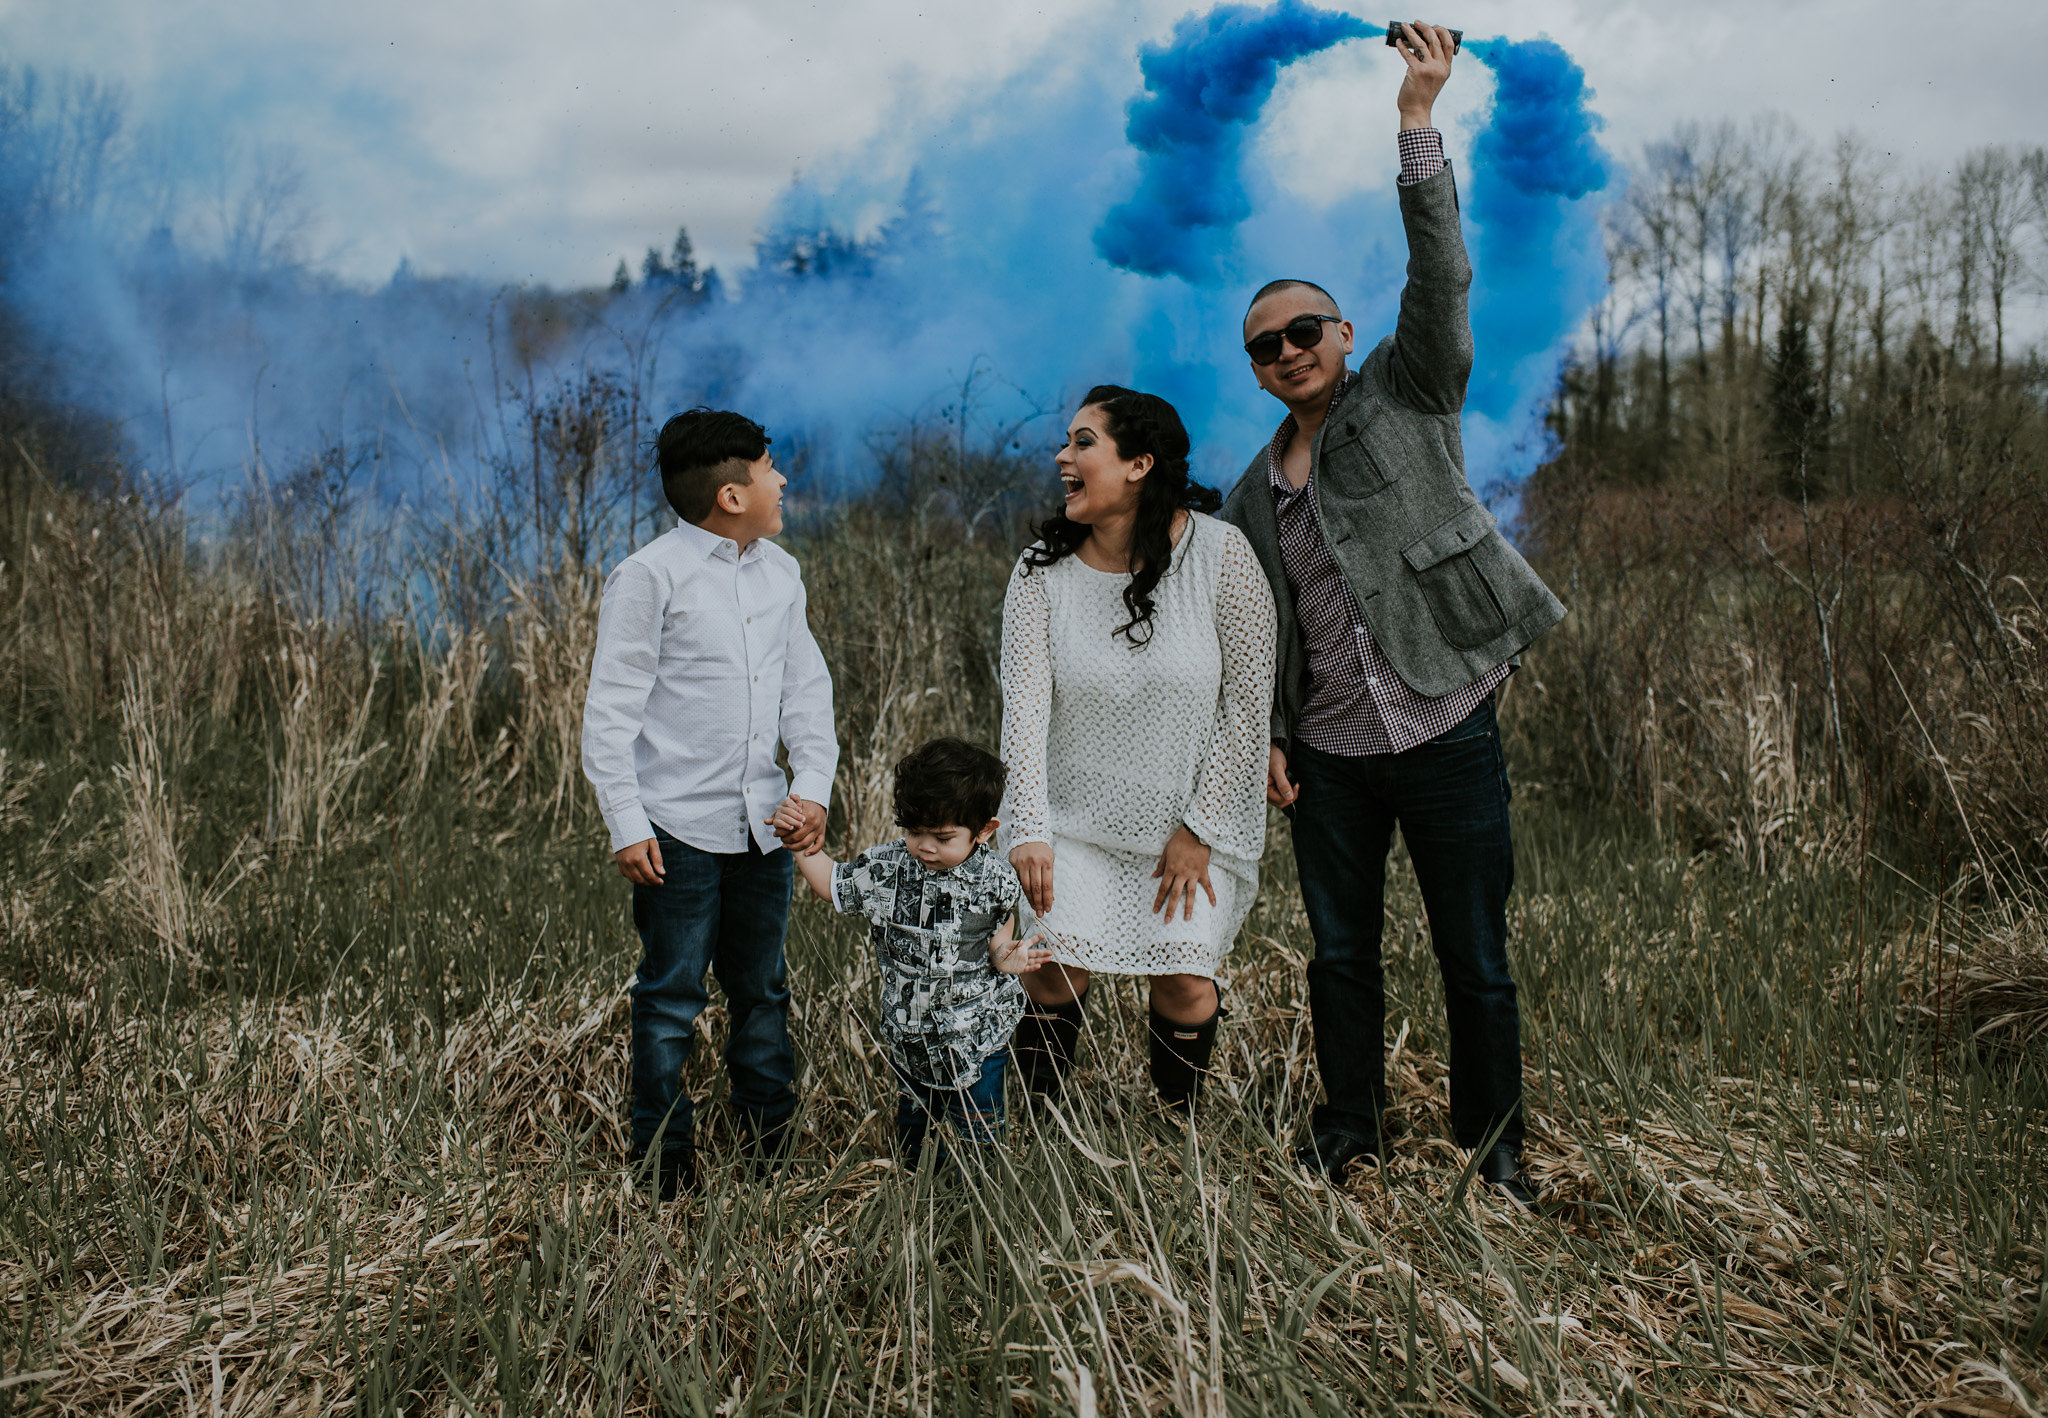 Unique Gender Reveal, Smoke Bomb Gender Reveal, It's a Boy Gender Reveal, White Dress with Bell Sleeves, Floral Crown, Blue and White Floral Crown, Smoke Bomb Reveal, Gender Reveal Ideas, Baby Shower Outfit